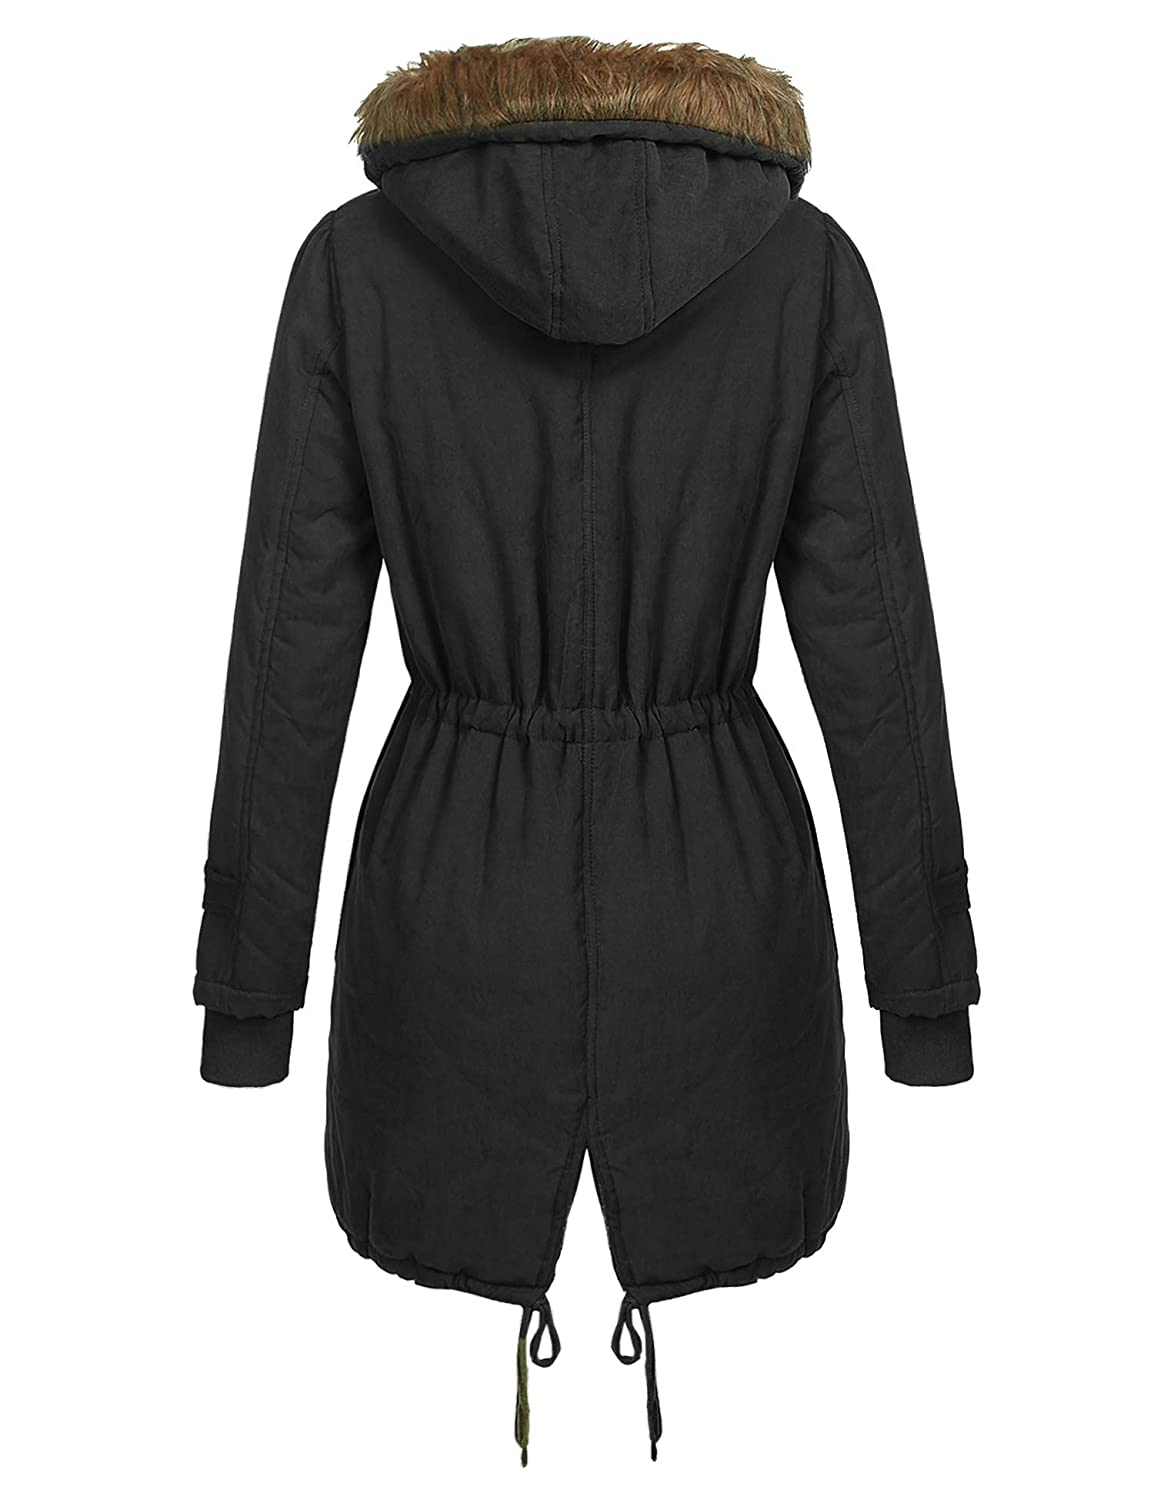 Beyove Womens Winter Parka Coat Faux Fur Hooded Parka Coat with Two Front Pockets Black XX-L